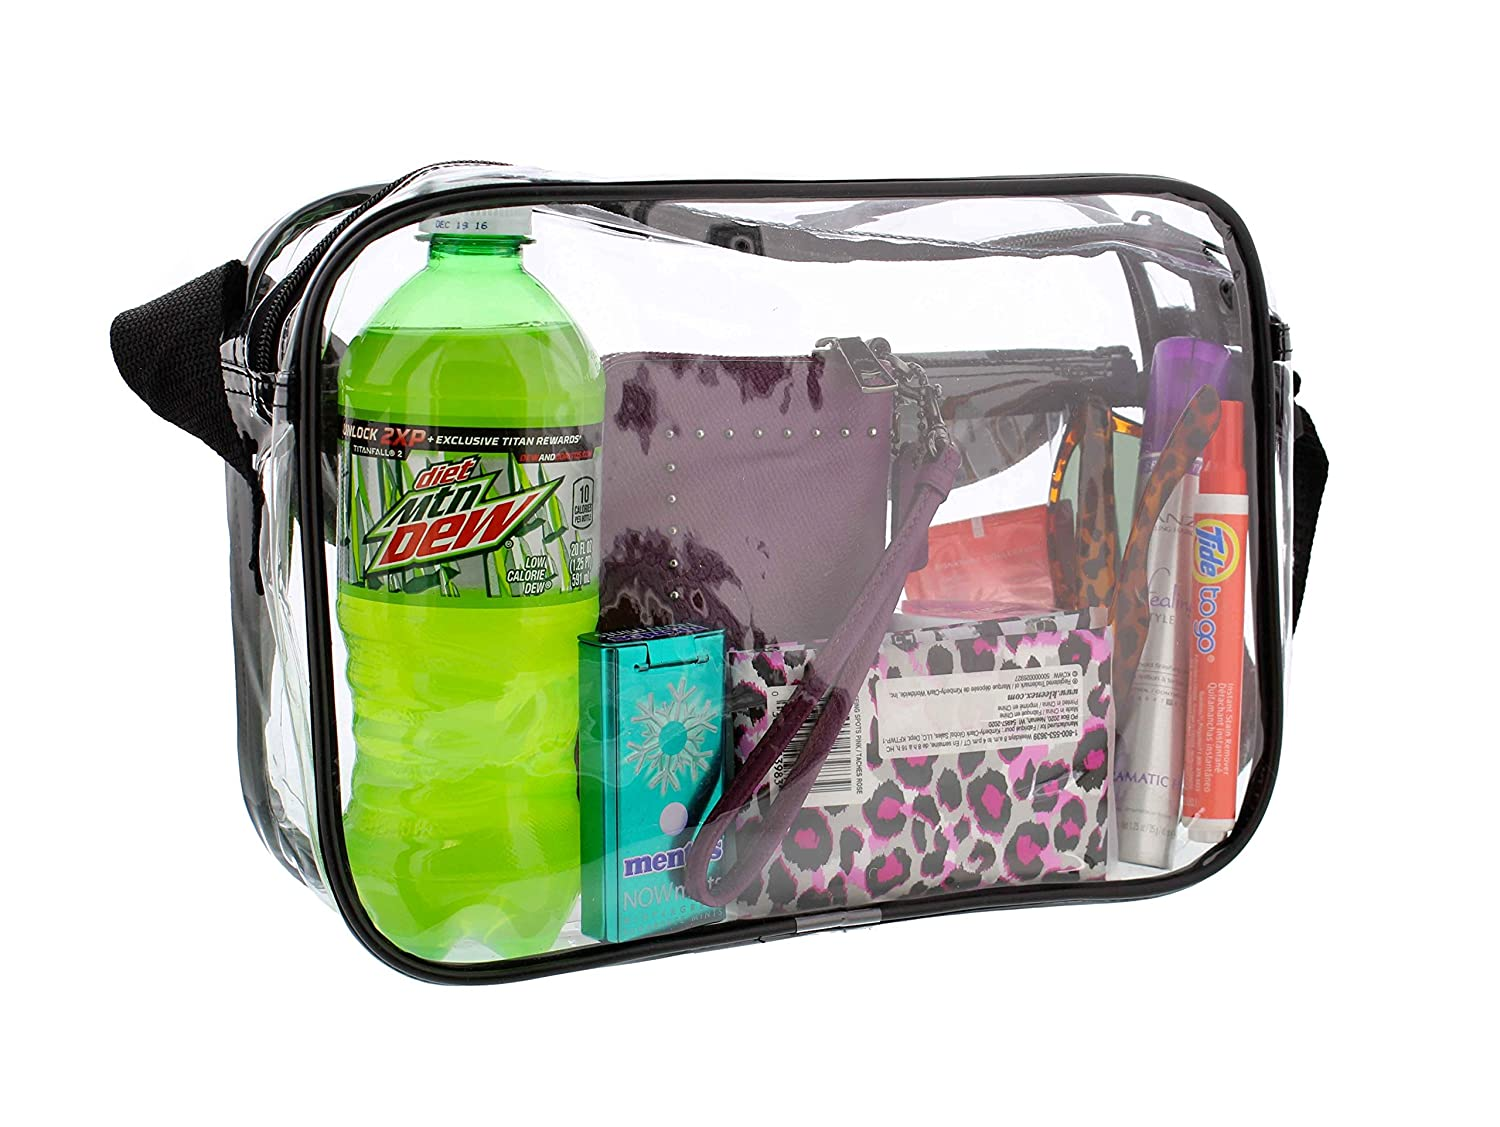 Amazon.com : Redneck Convent Clear Purse, Small Medium & Large, NFL Stadium Approved Bag with Zipper & Comfortable Shoulder Strap : Sports & Outdoors